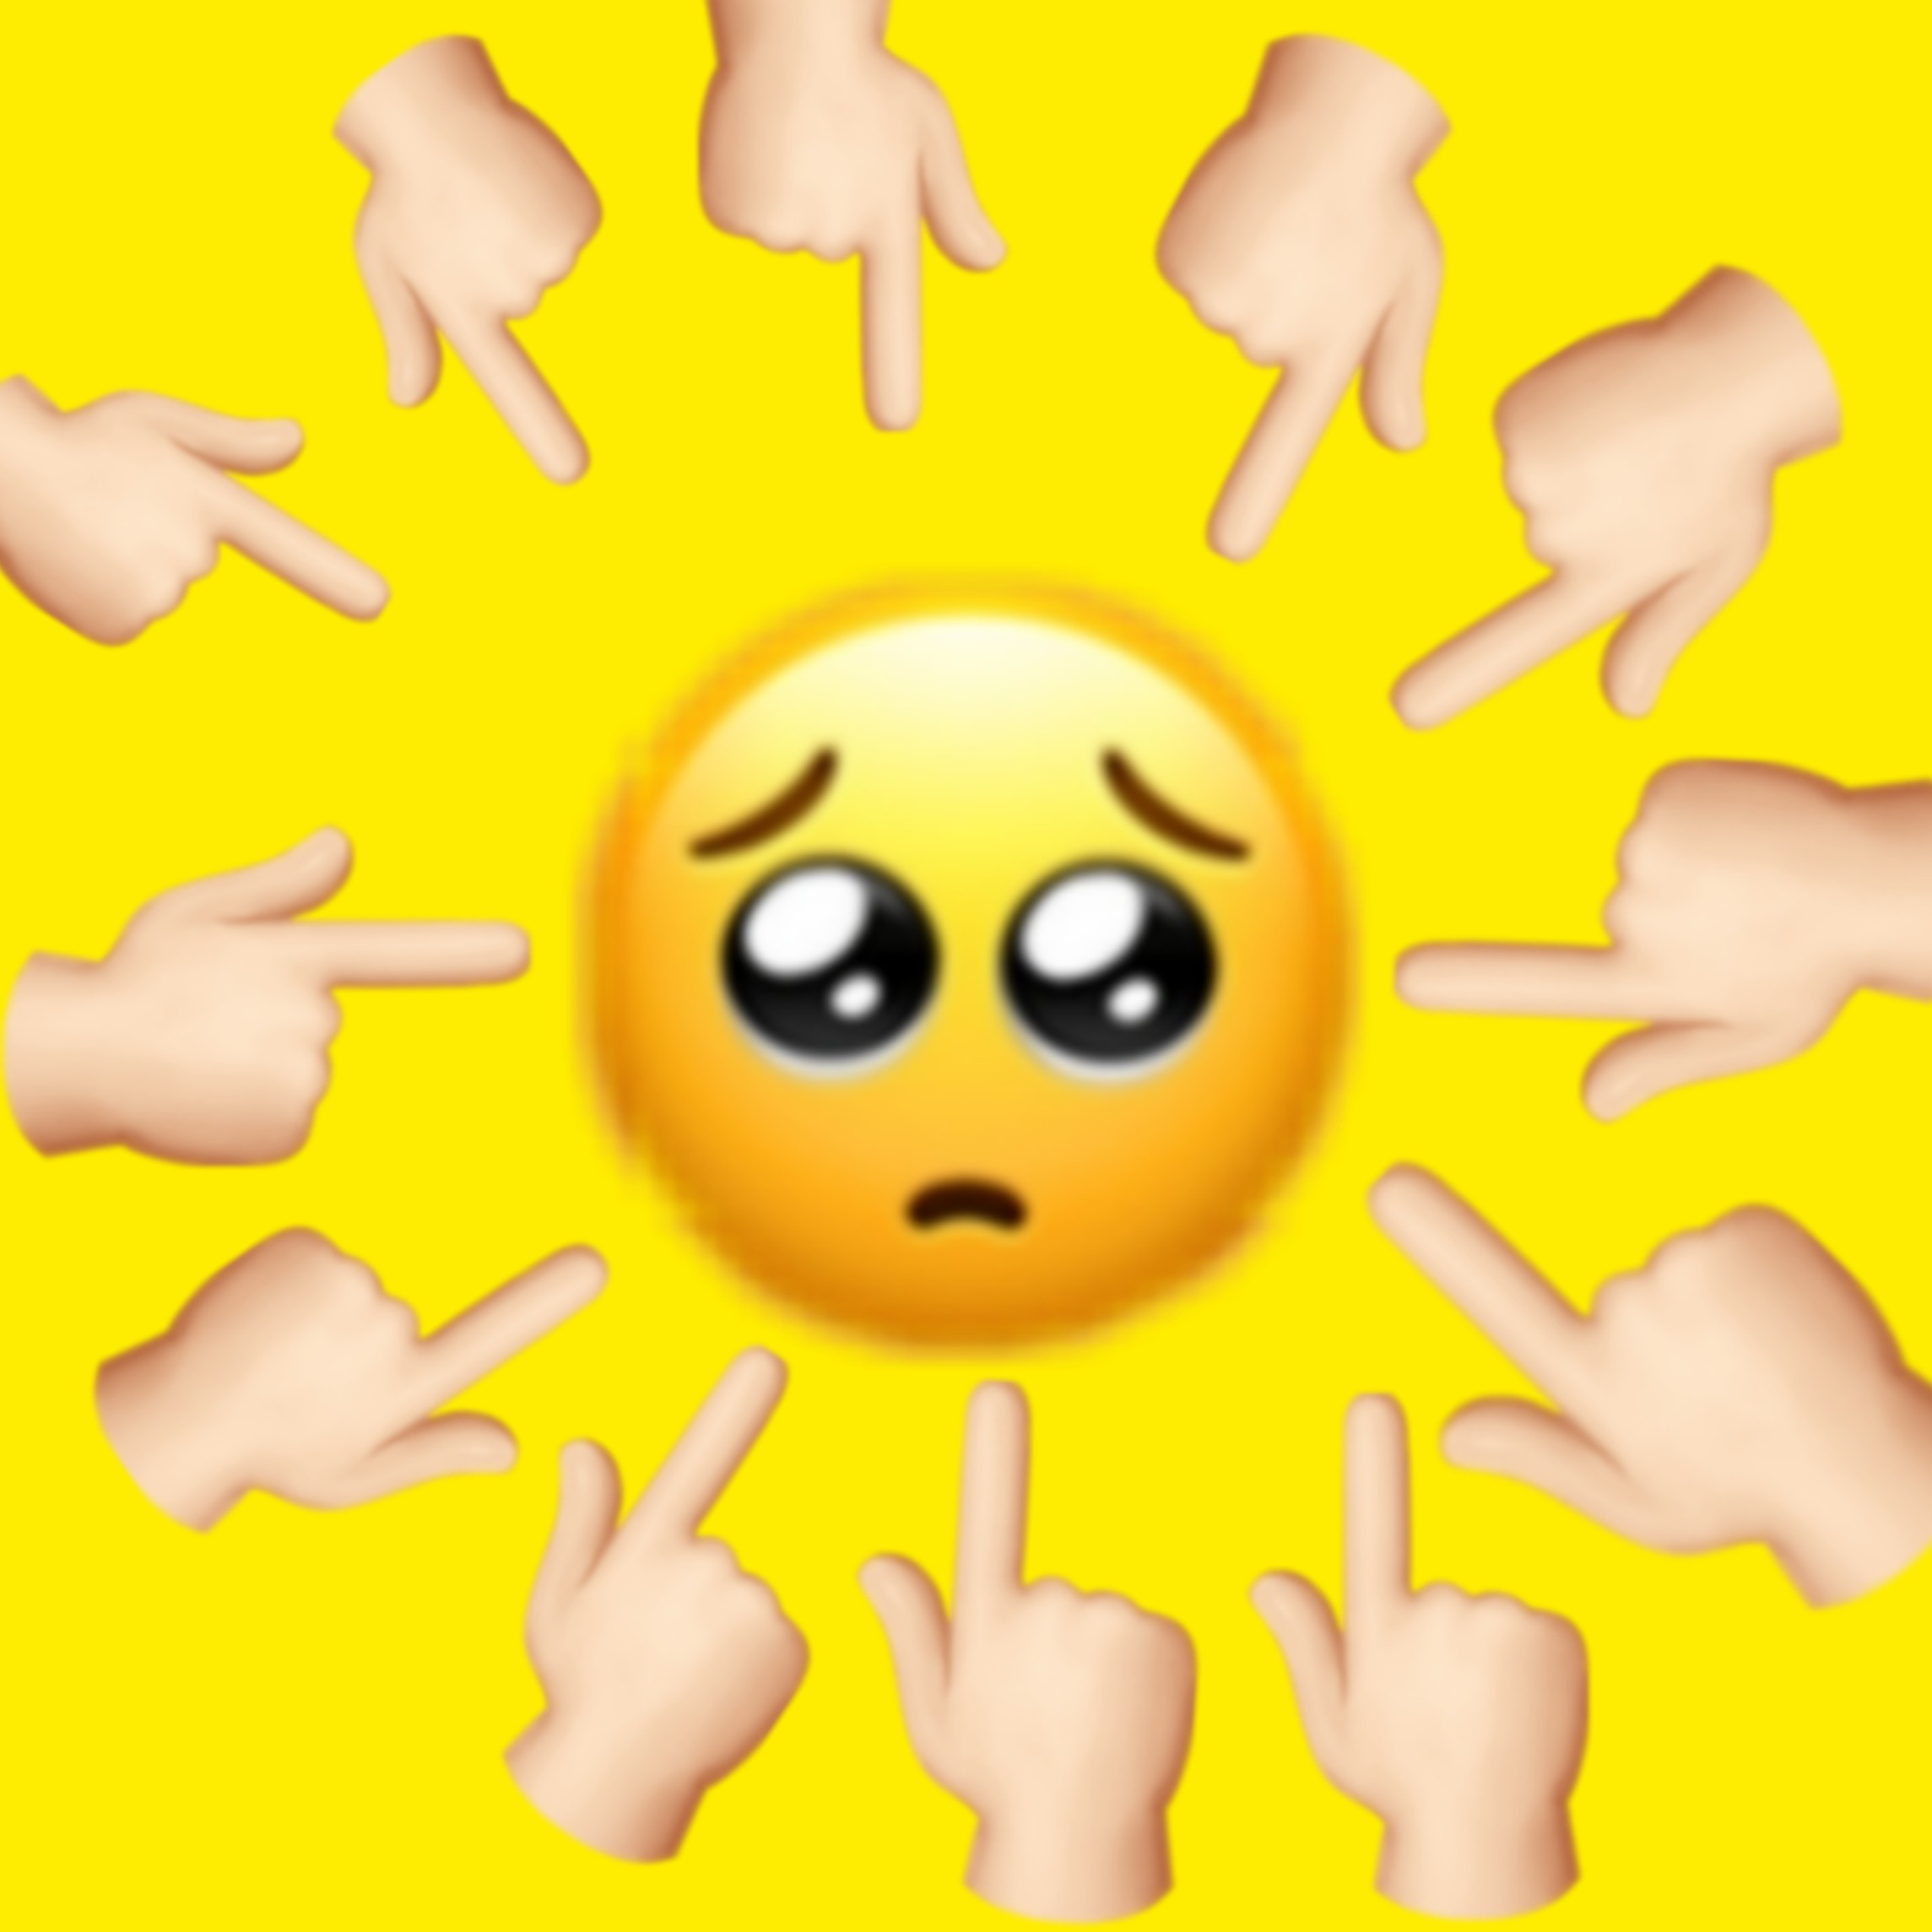 Peur Triste Smiley Sticker Image By View Miraculousn